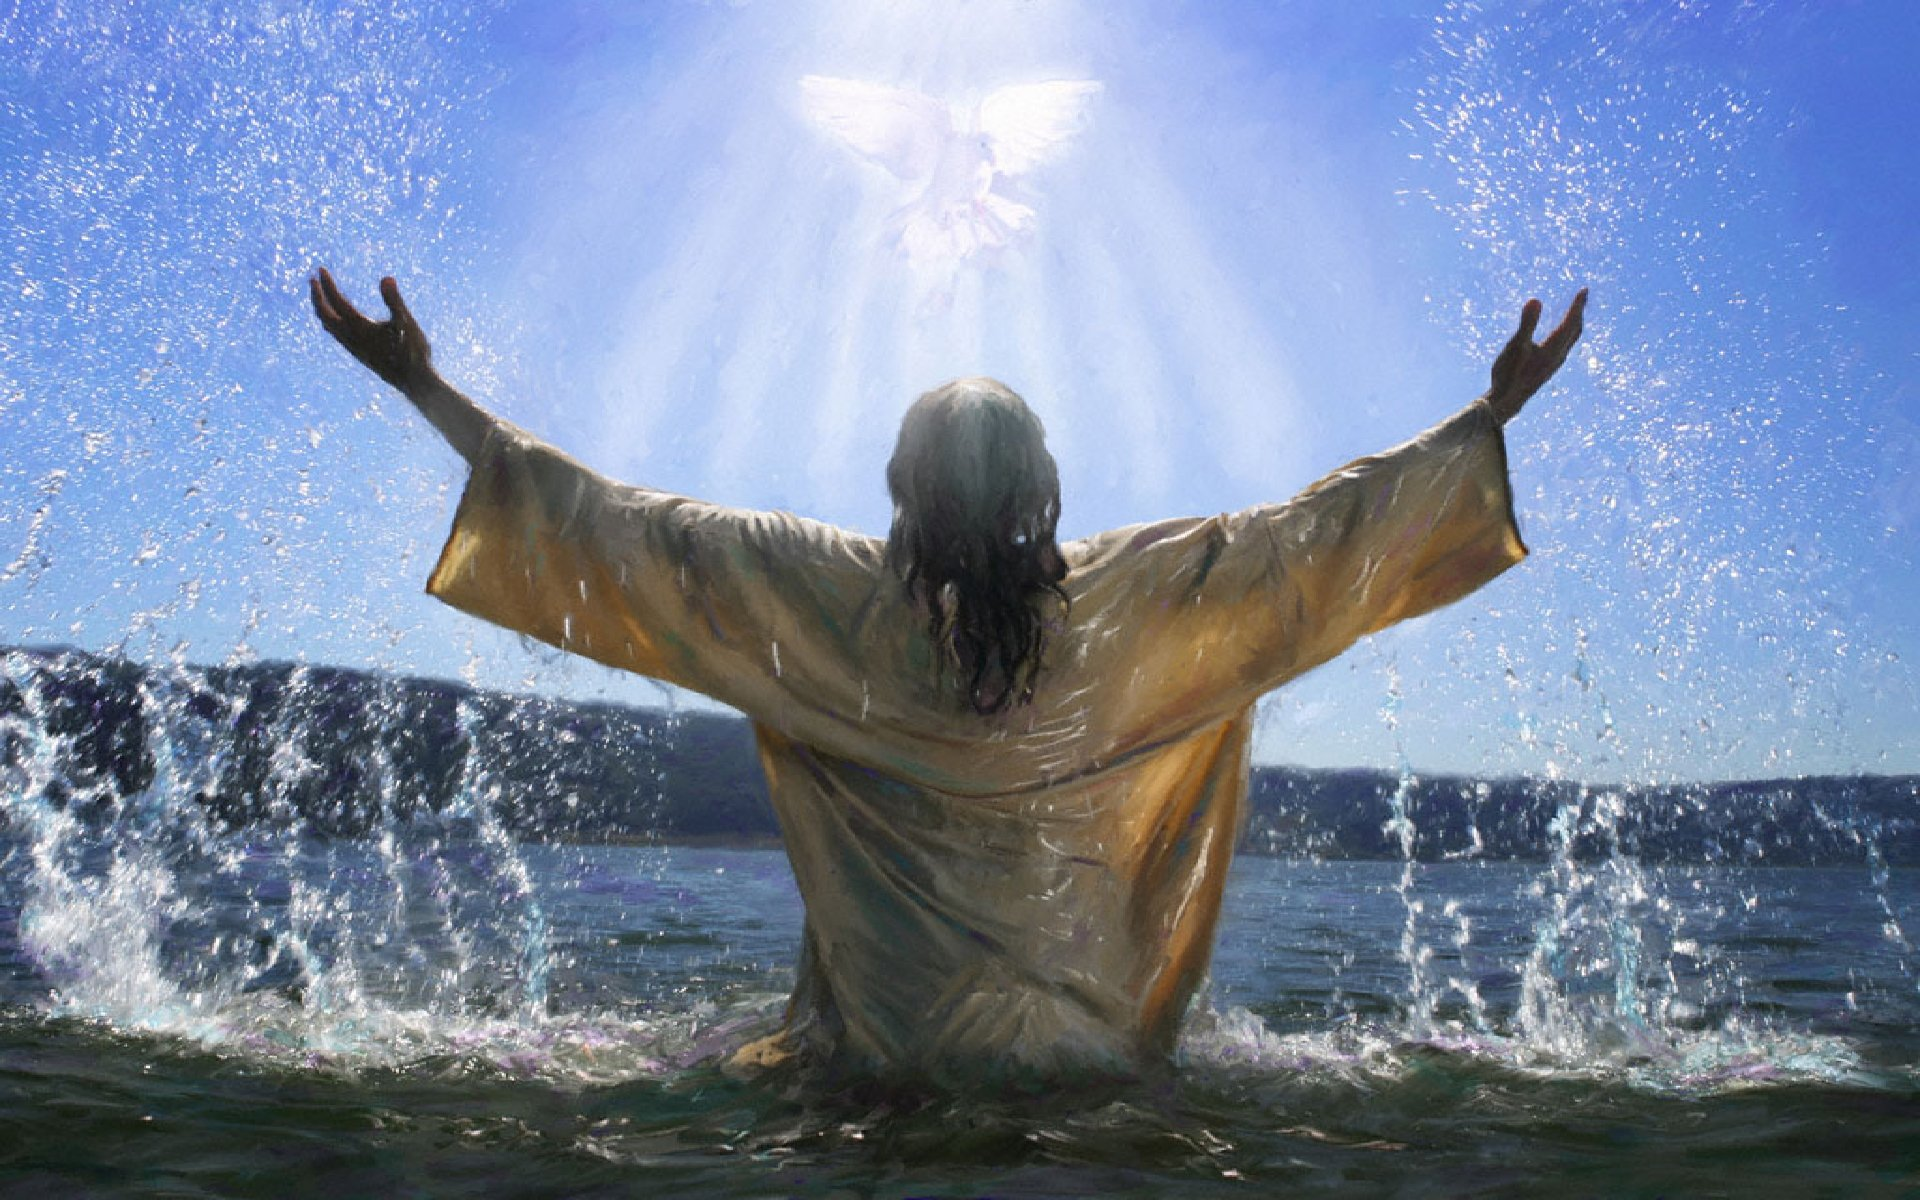 wallpaper-jesus-fondos-christ-imagenes-religious-archives